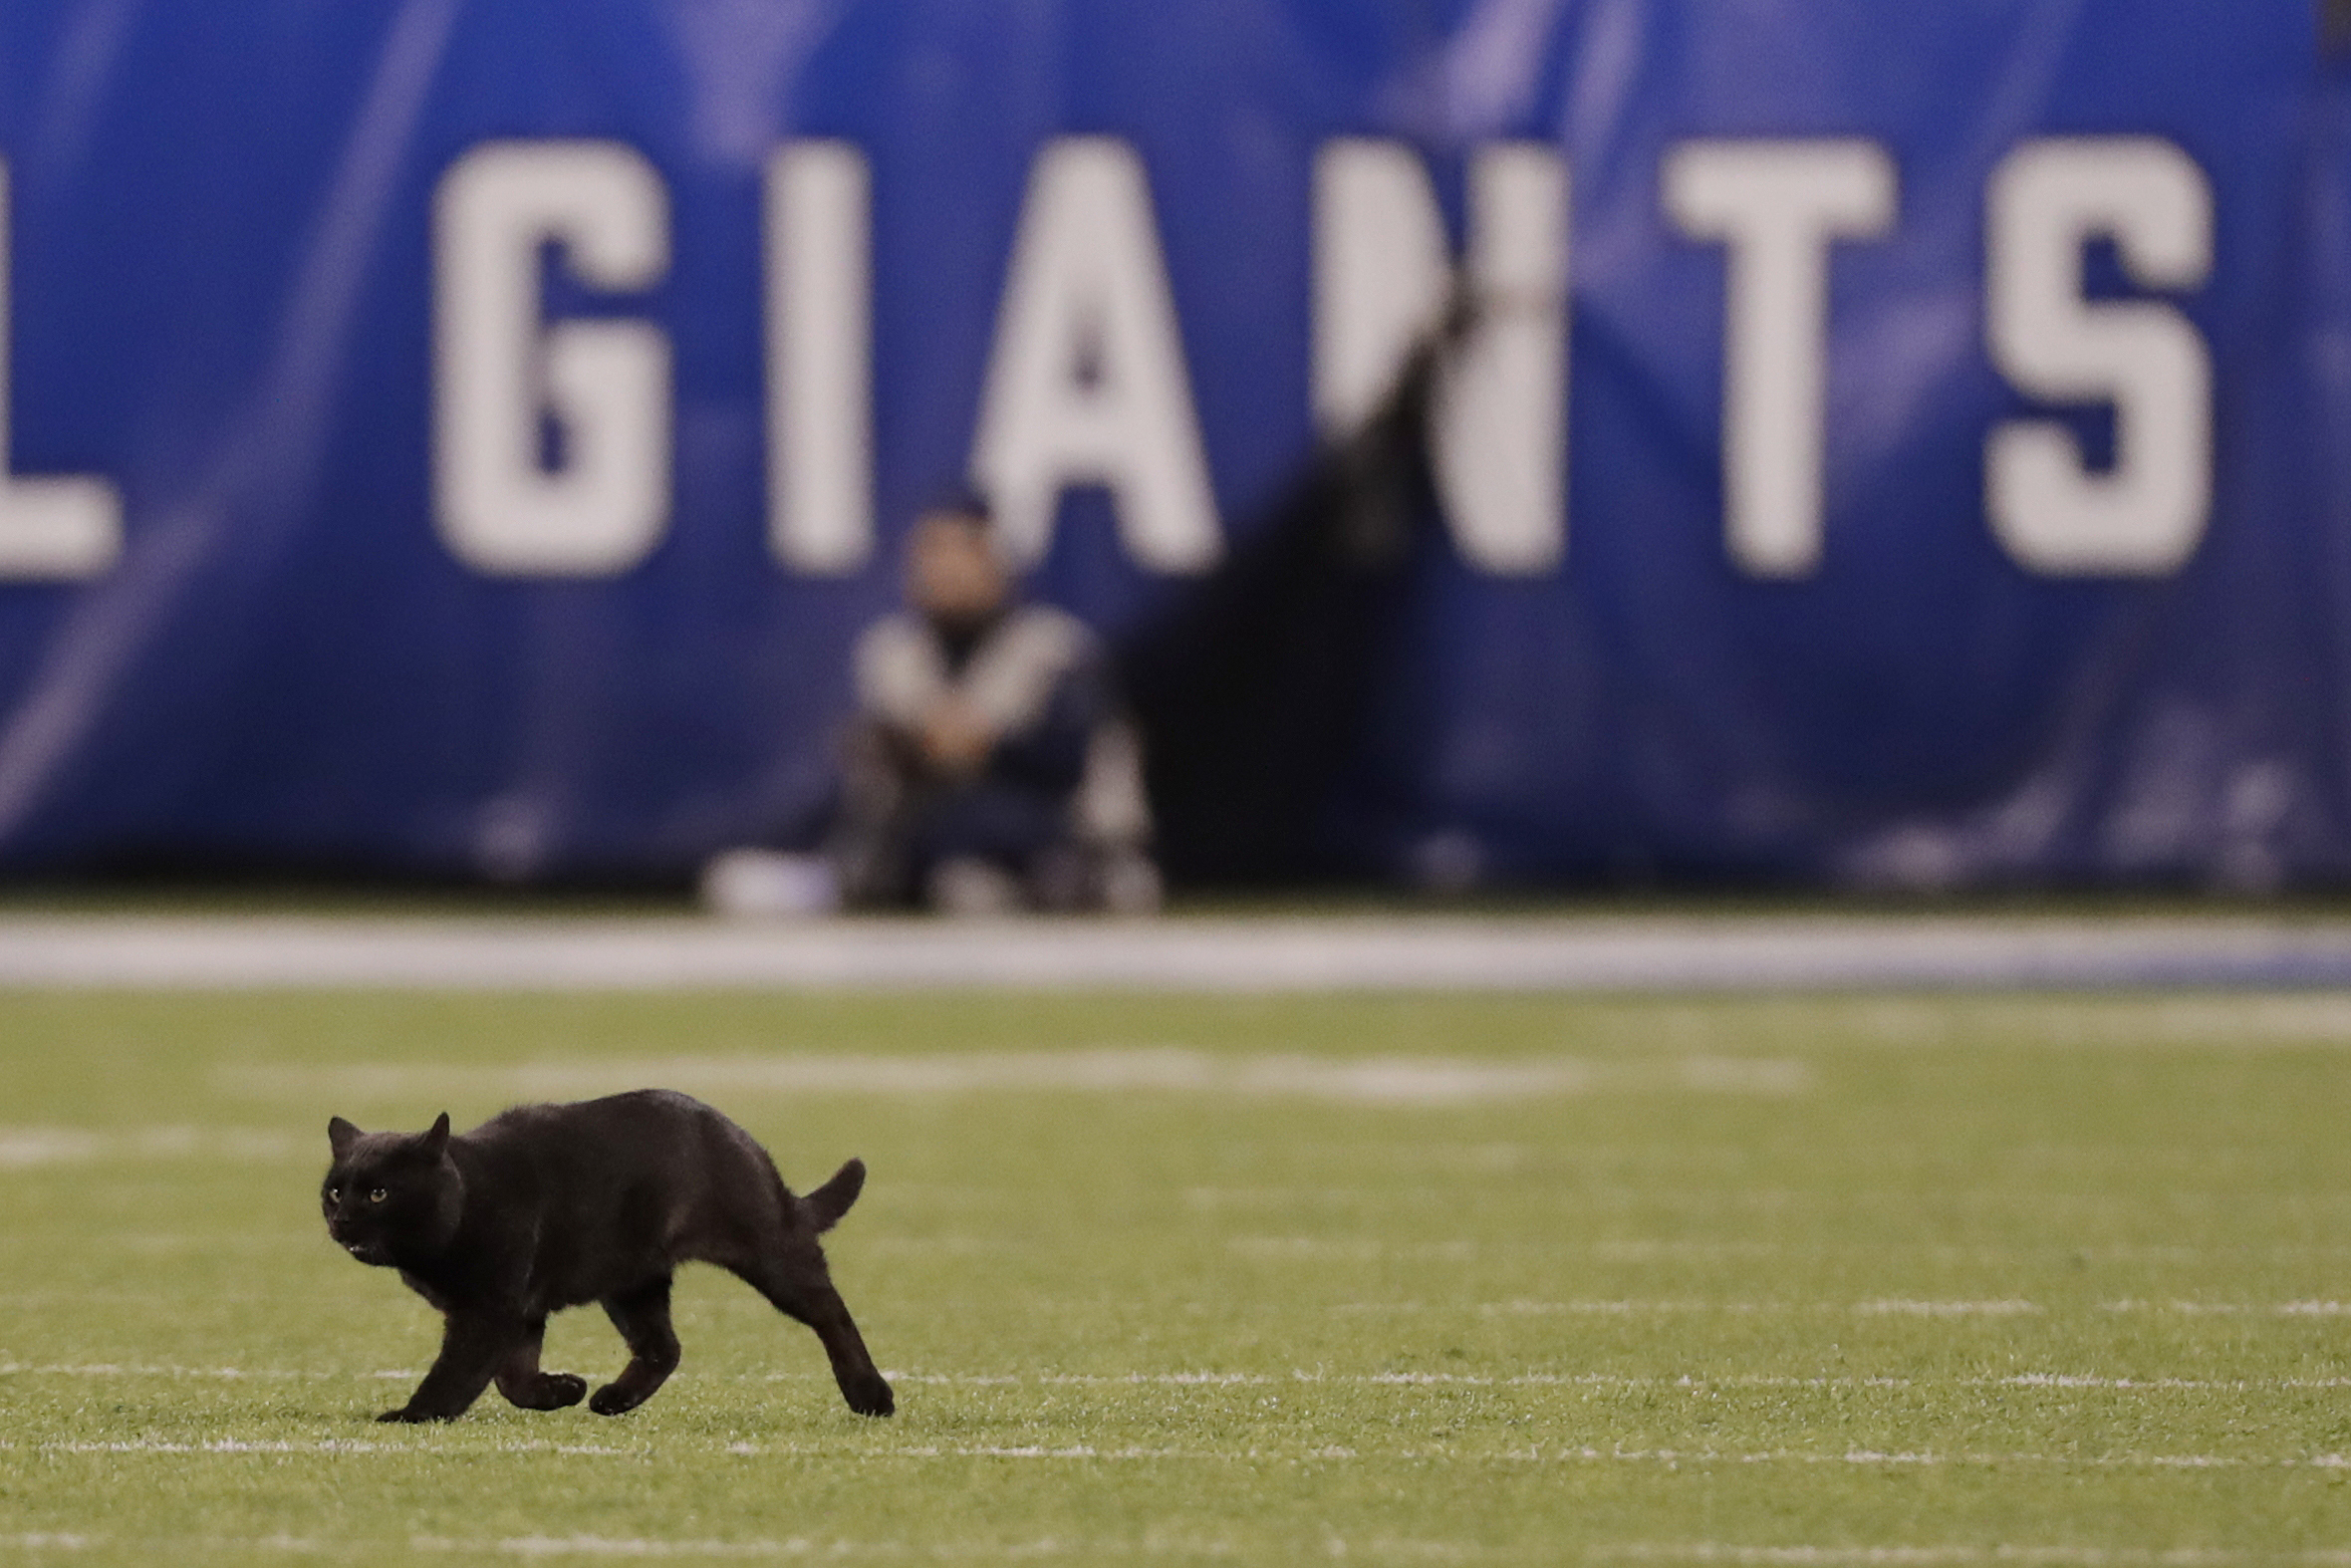 A black cat runs on the field during the second quarter of Monday's Giants-Cowboys game in East Rutherford, N.J.